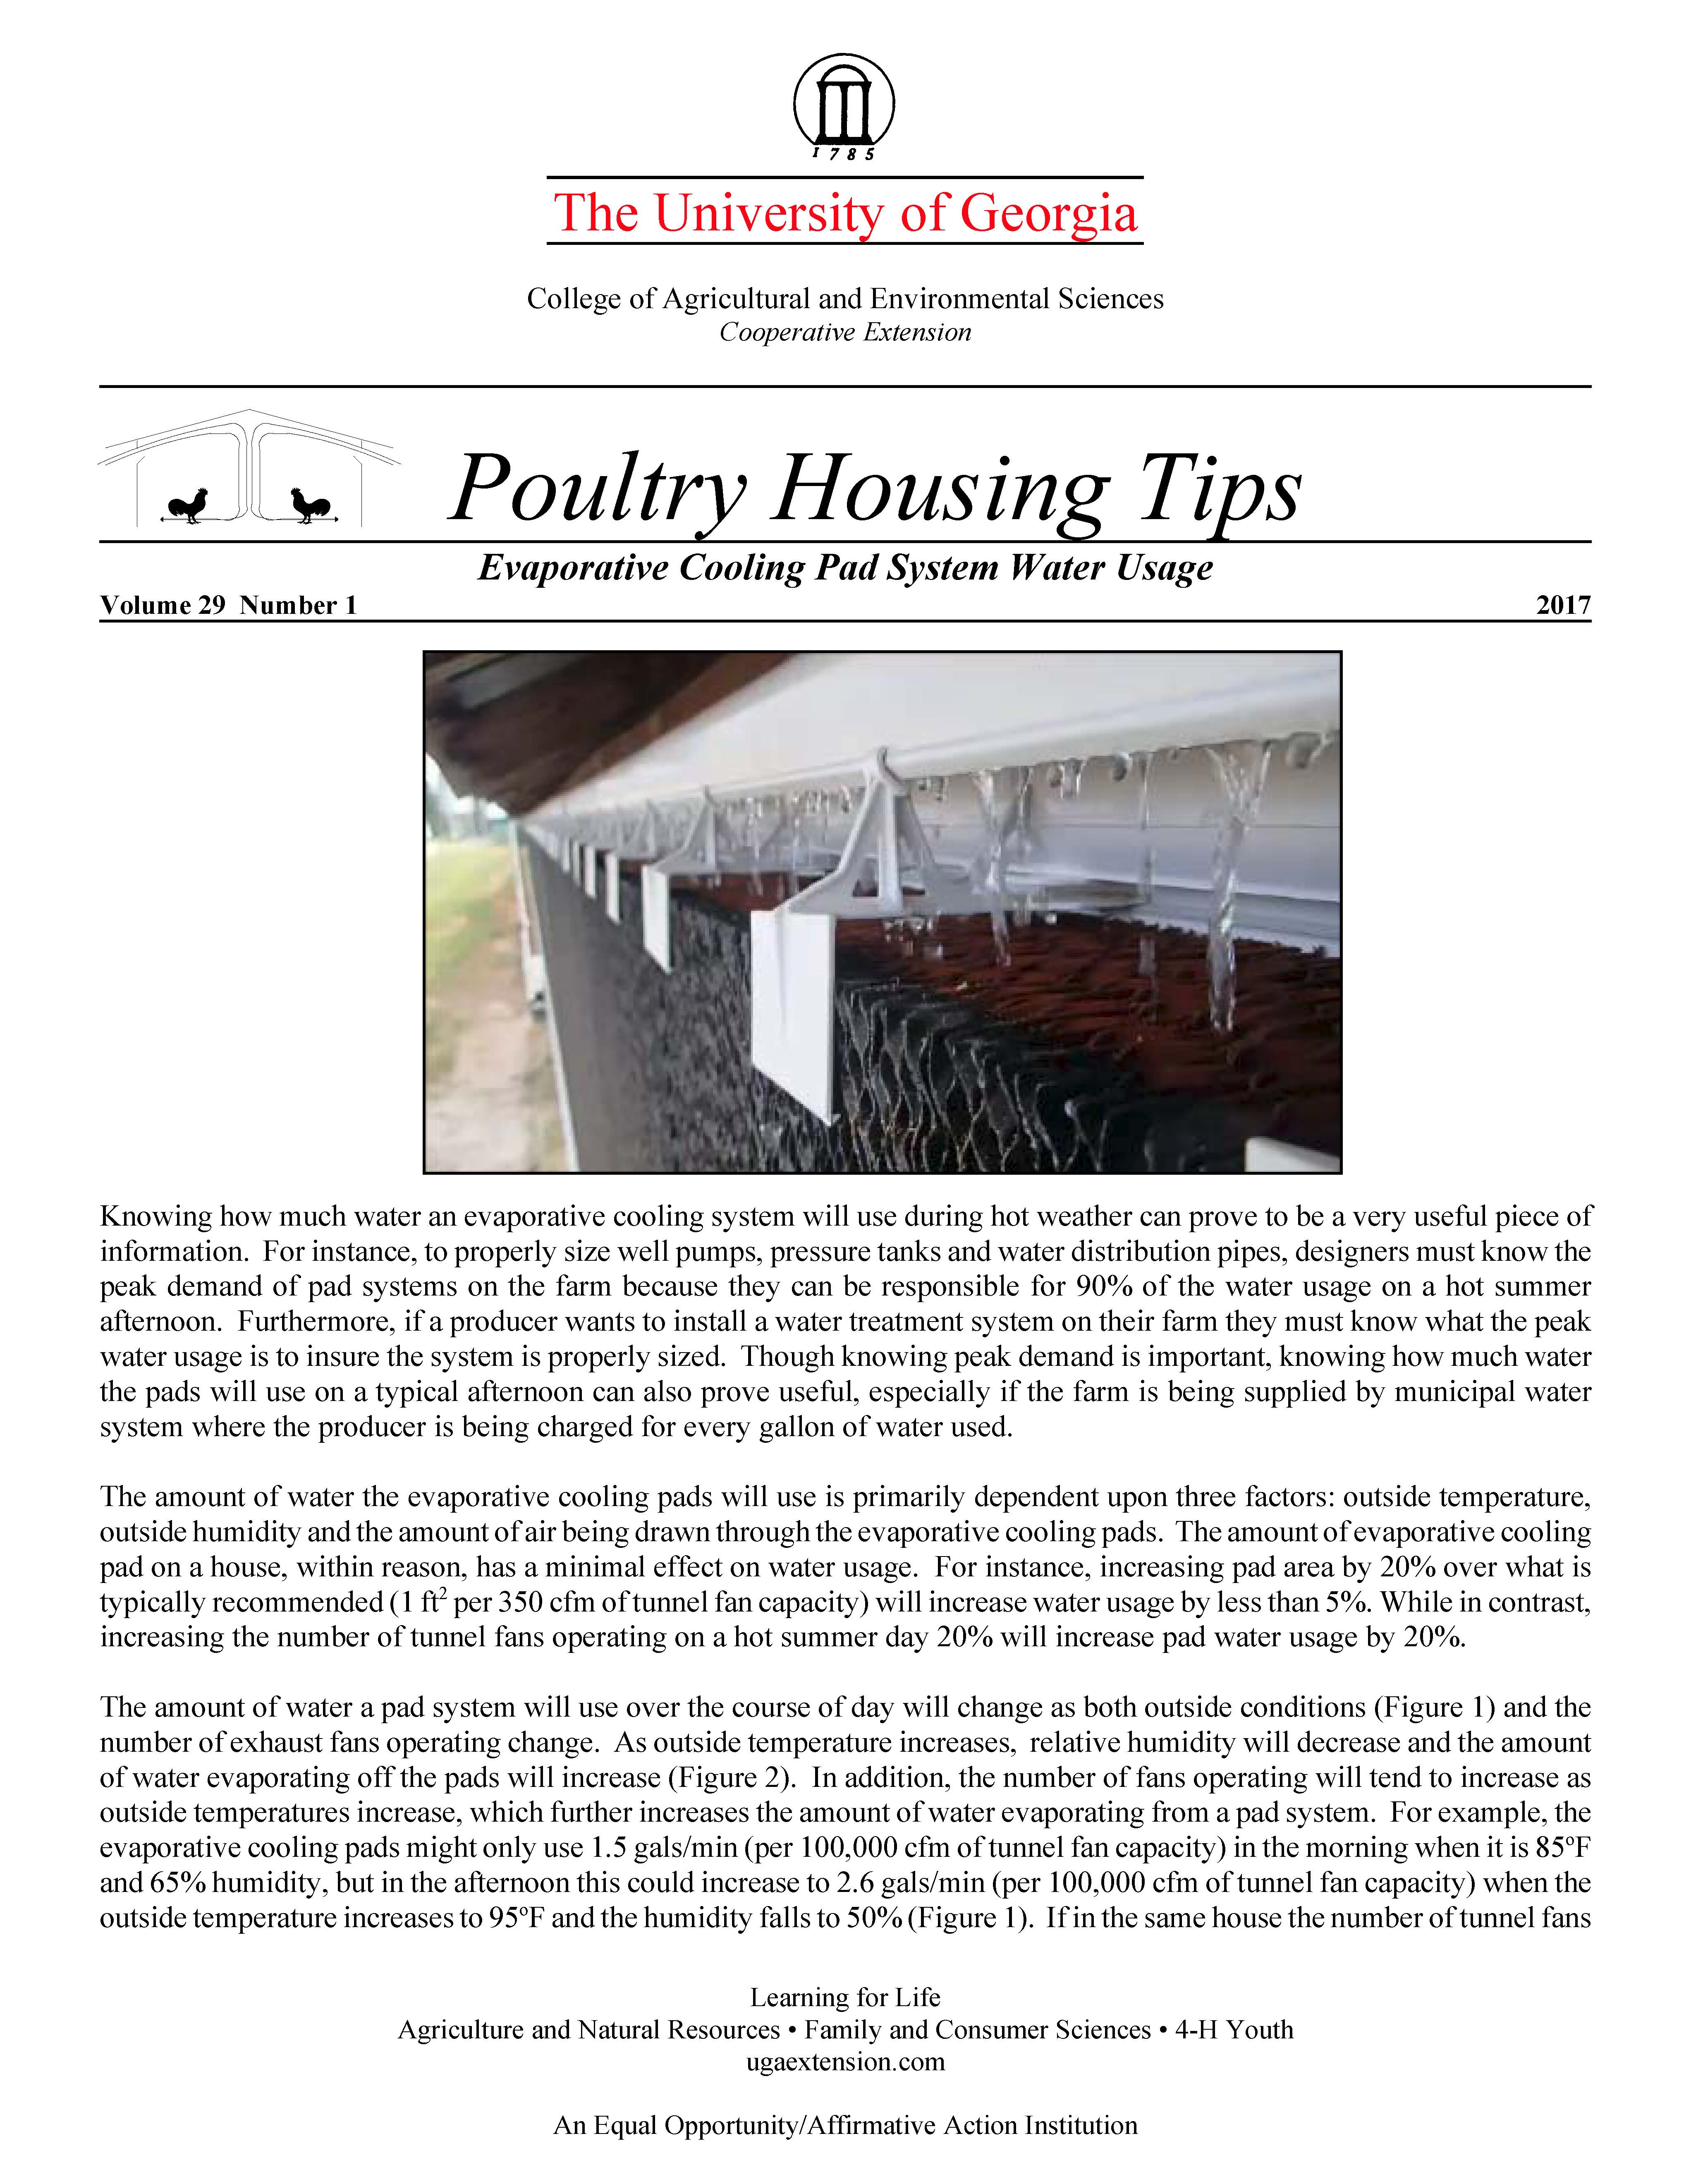 Evaporative Cooling Pad System Water Usage | UGA Poultry